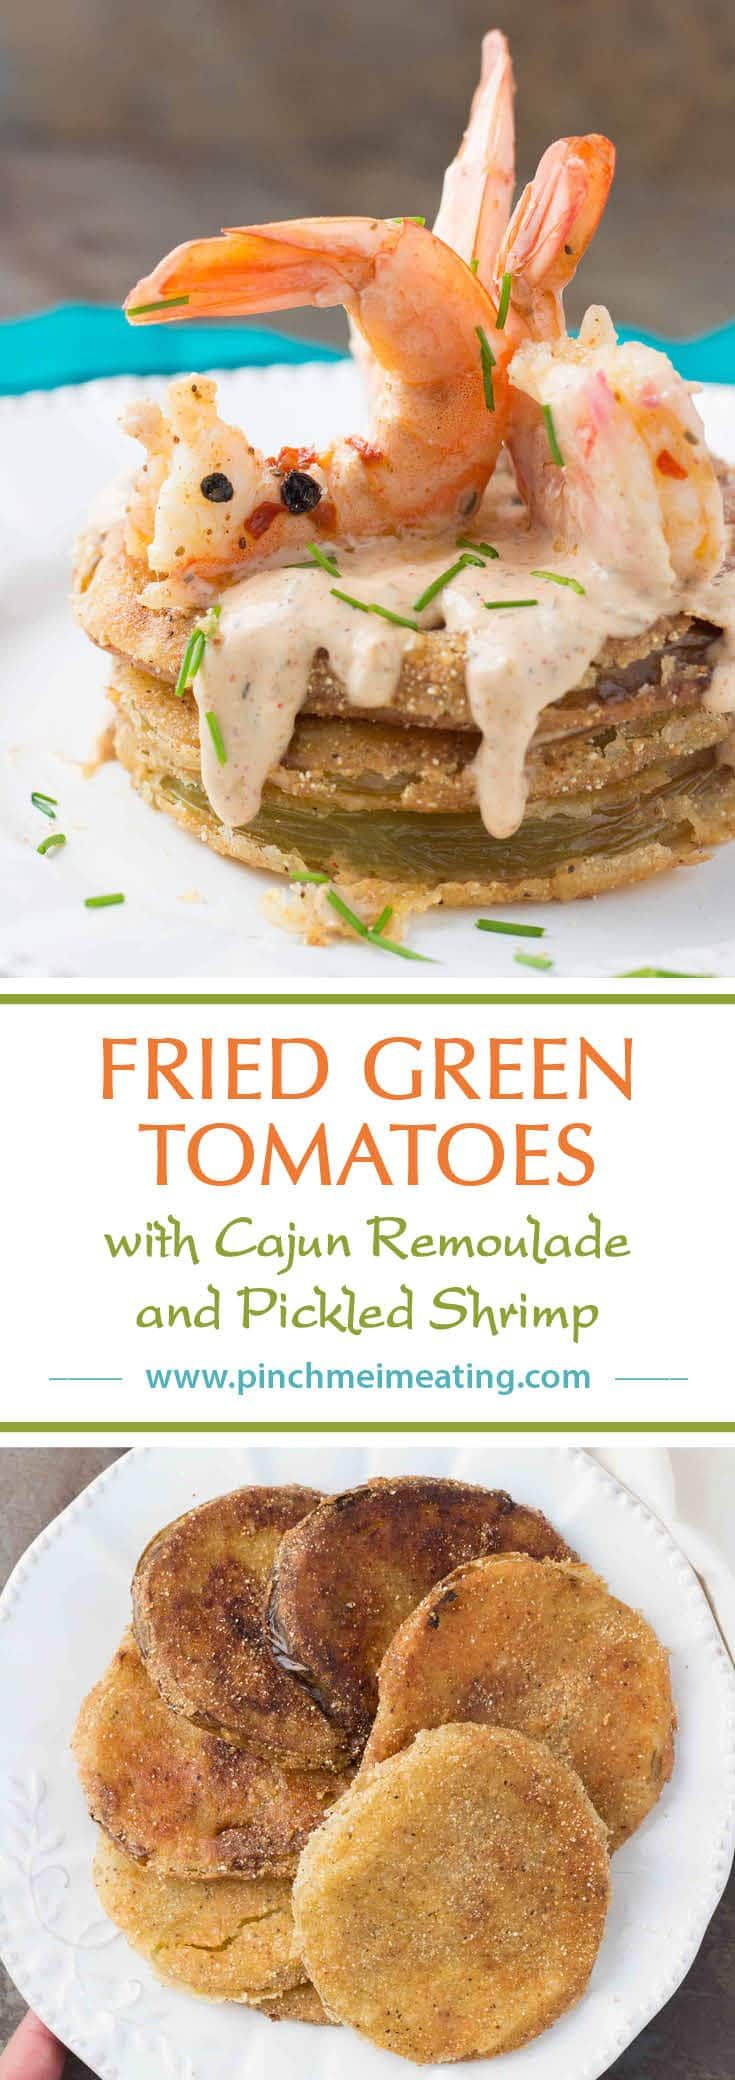 Fried green tomatoes with Cajun remoulade and pickled shrimp combine into a tangy, spicy, and crispy Southern dish you can use as an appetizer, side dish, or entrée!